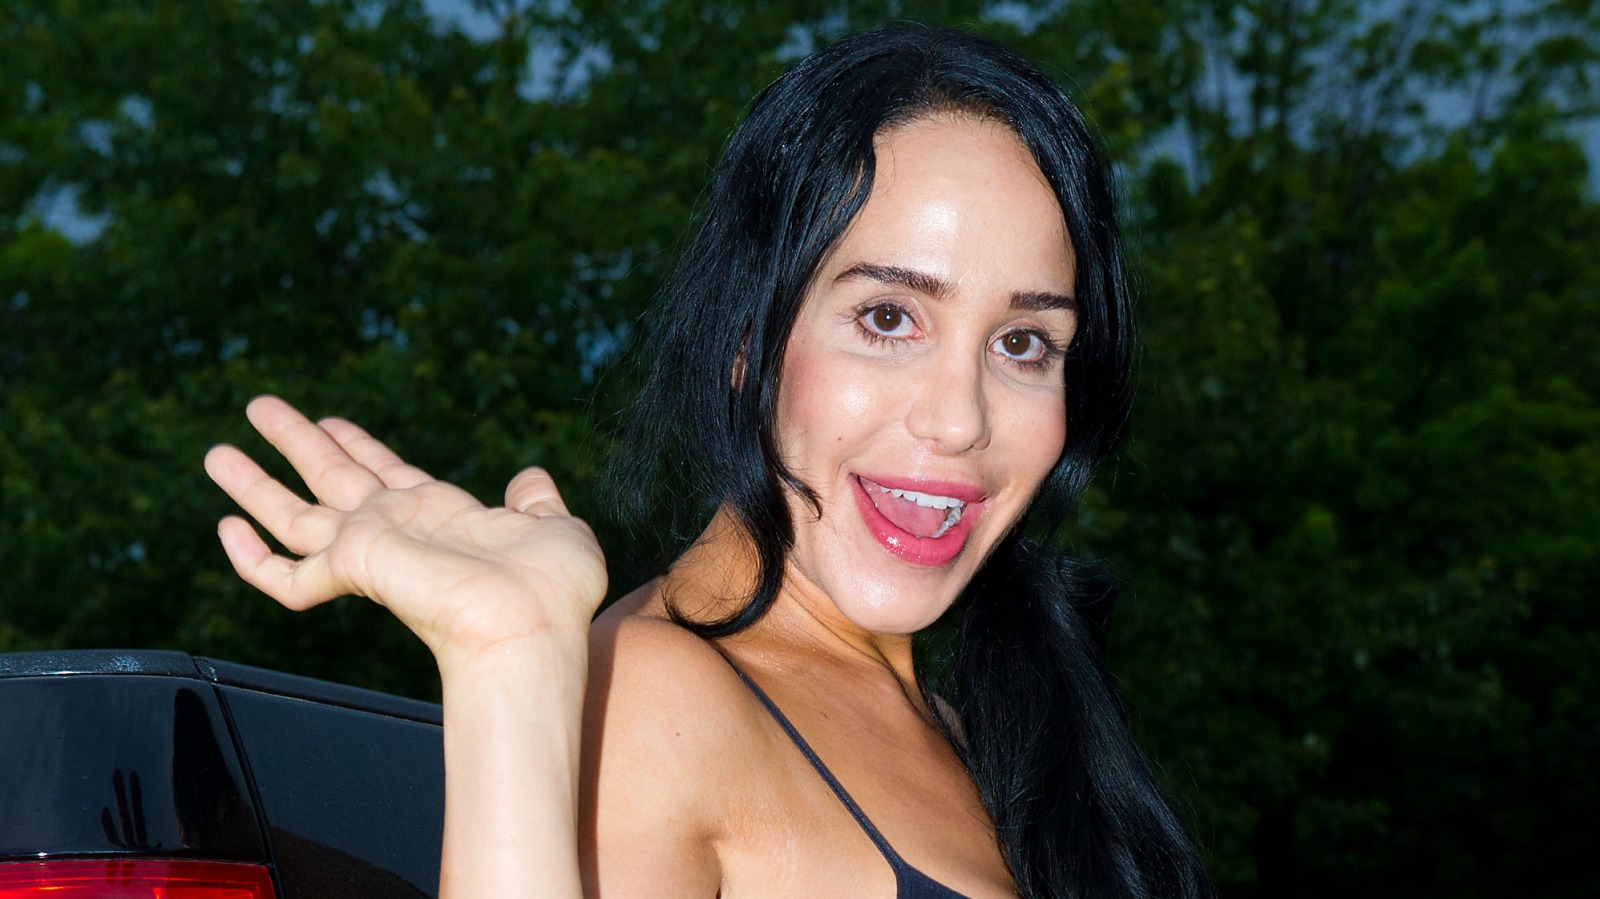 Here's what Octomom looks like today.jpg